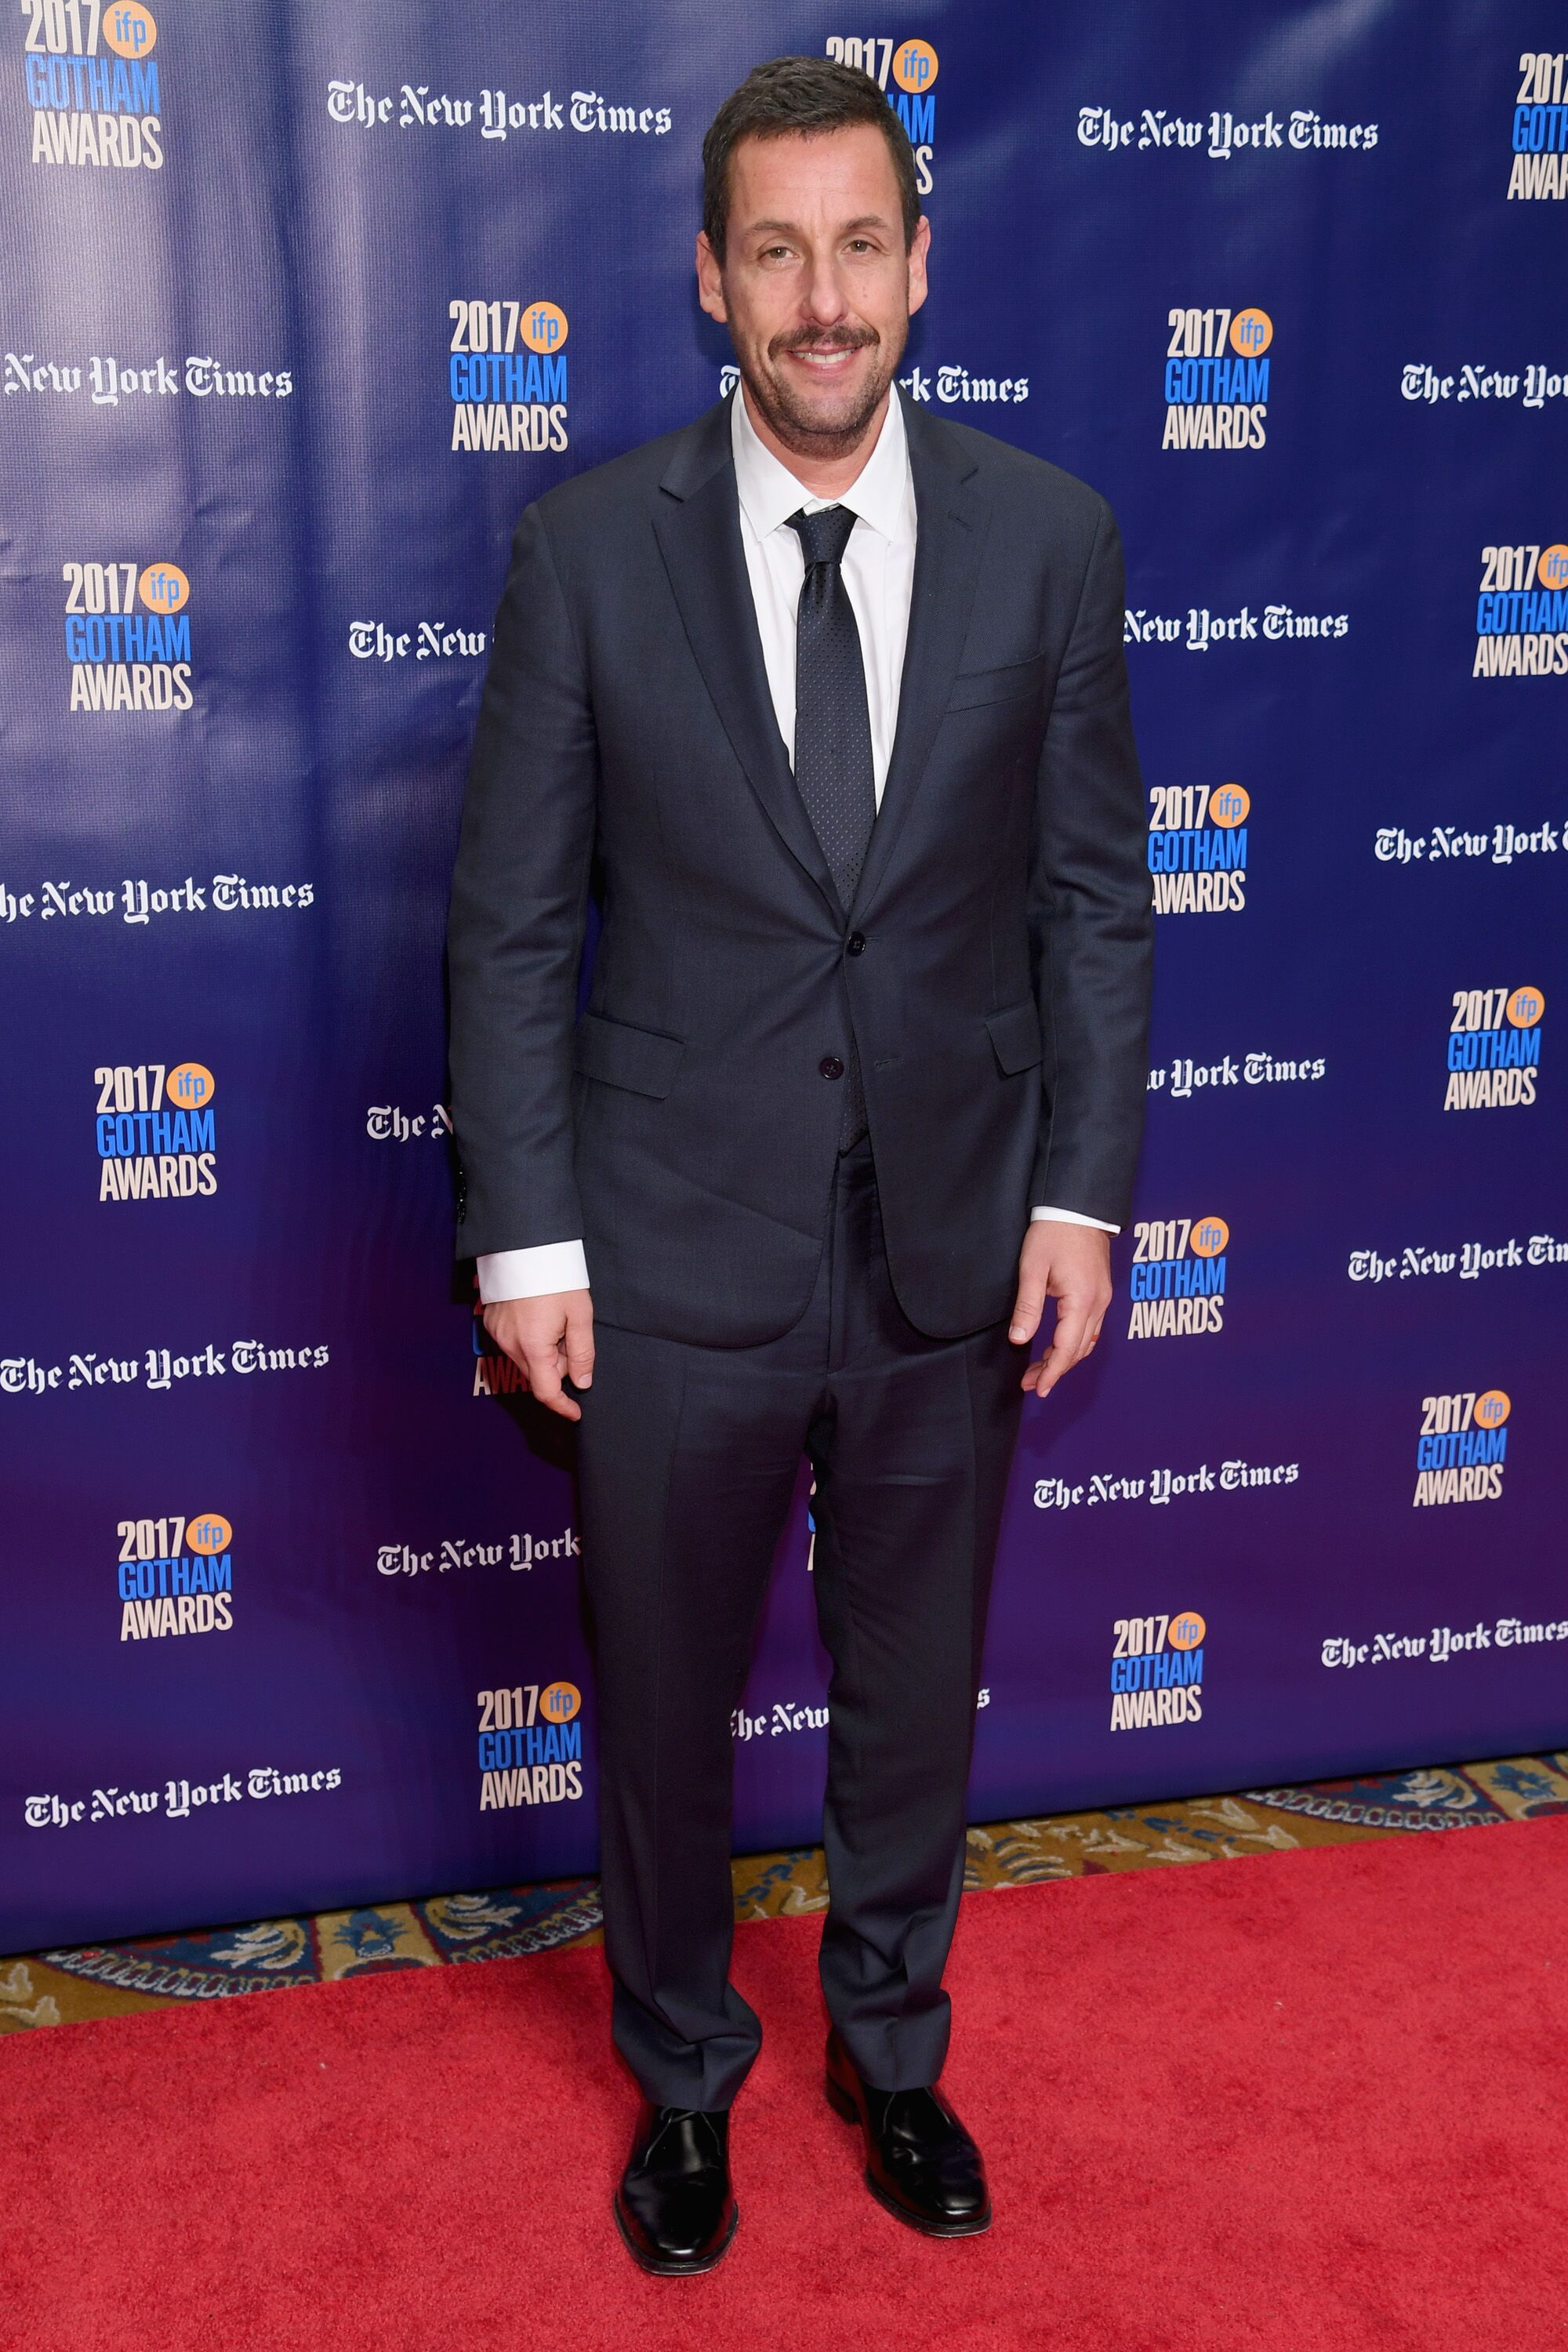 Adam Sandler attends IFP's 27th Annual Gotham Independent Film Awards. | Source: Getty Images